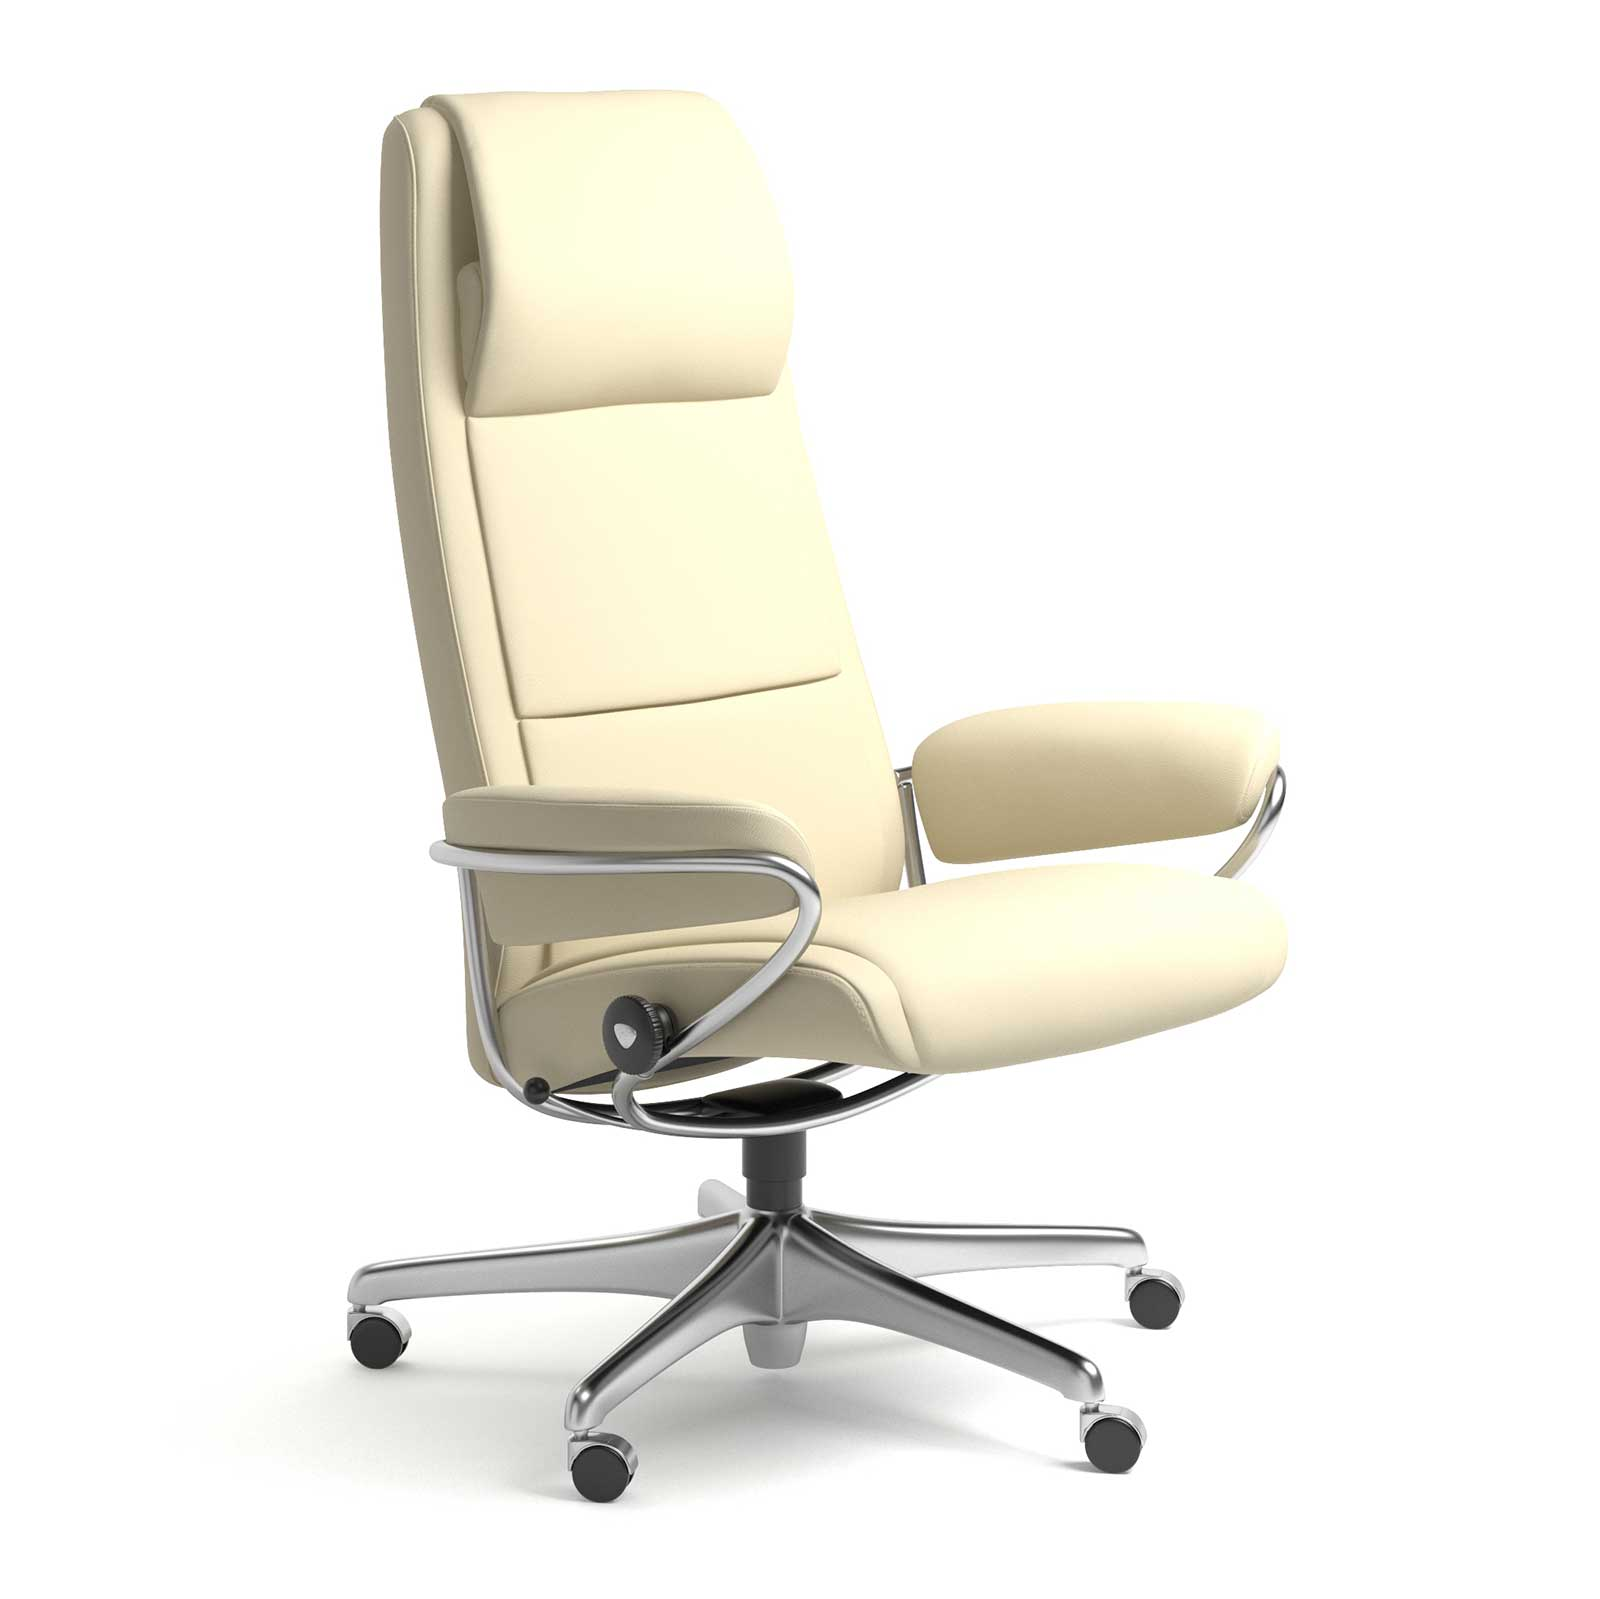 Stressless Sessel Paris High Back Stressless Ledersessel Paris Home Office Hohe Lehne Paloma Vanilla